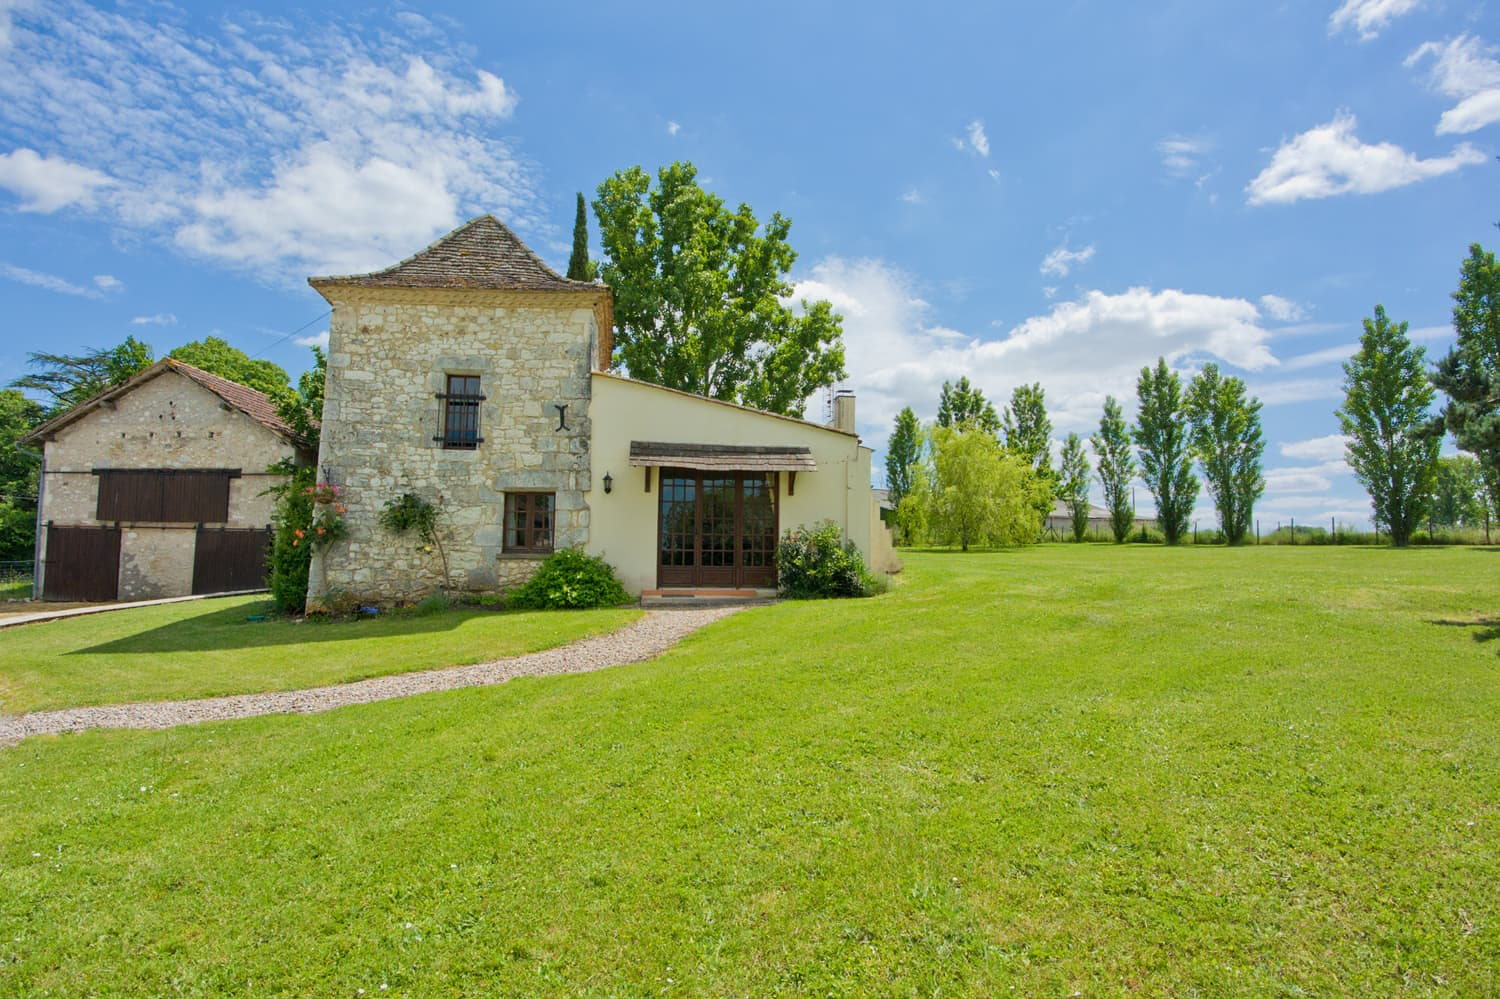 Holiday home in Dordogne with lawned garden